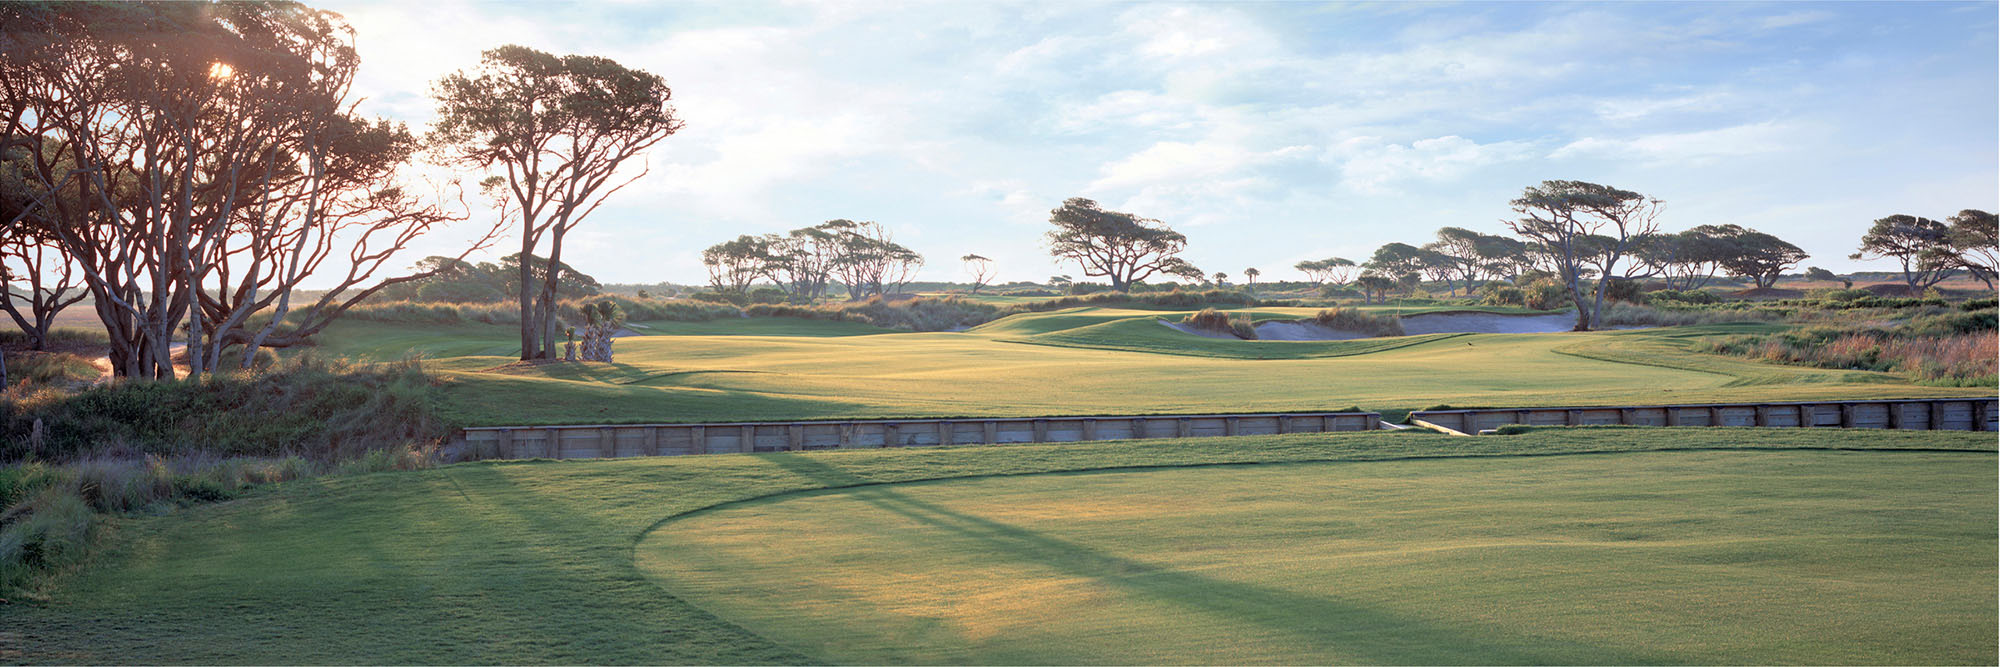 Golf Course Image - Kiawah Ocean Course No. 2